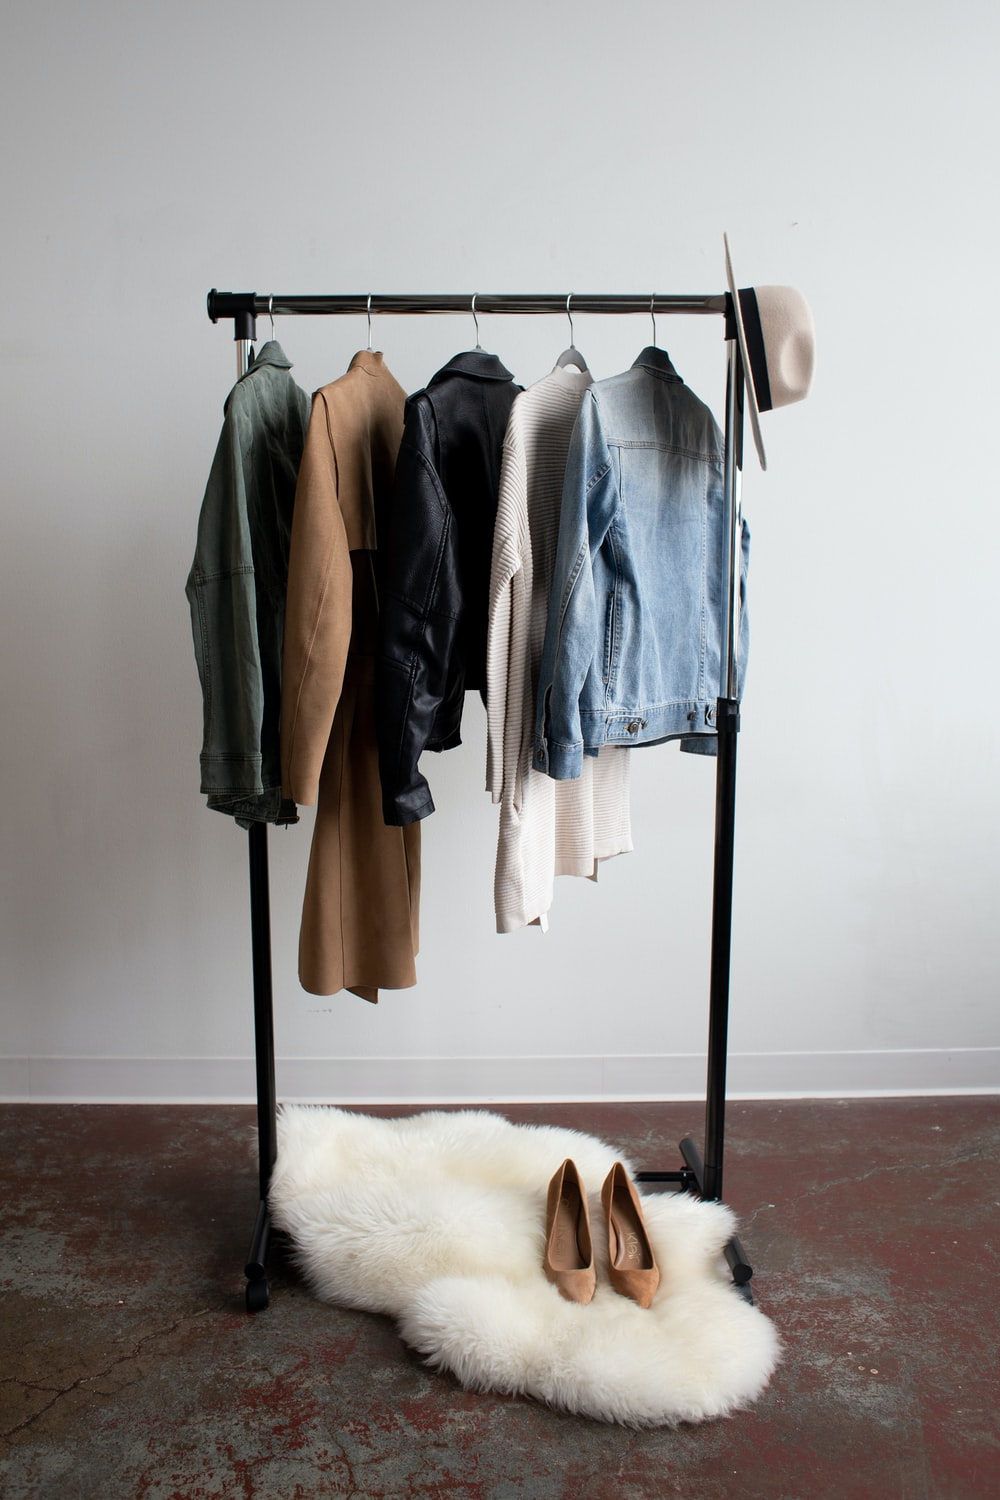 five jackets on clothes rack